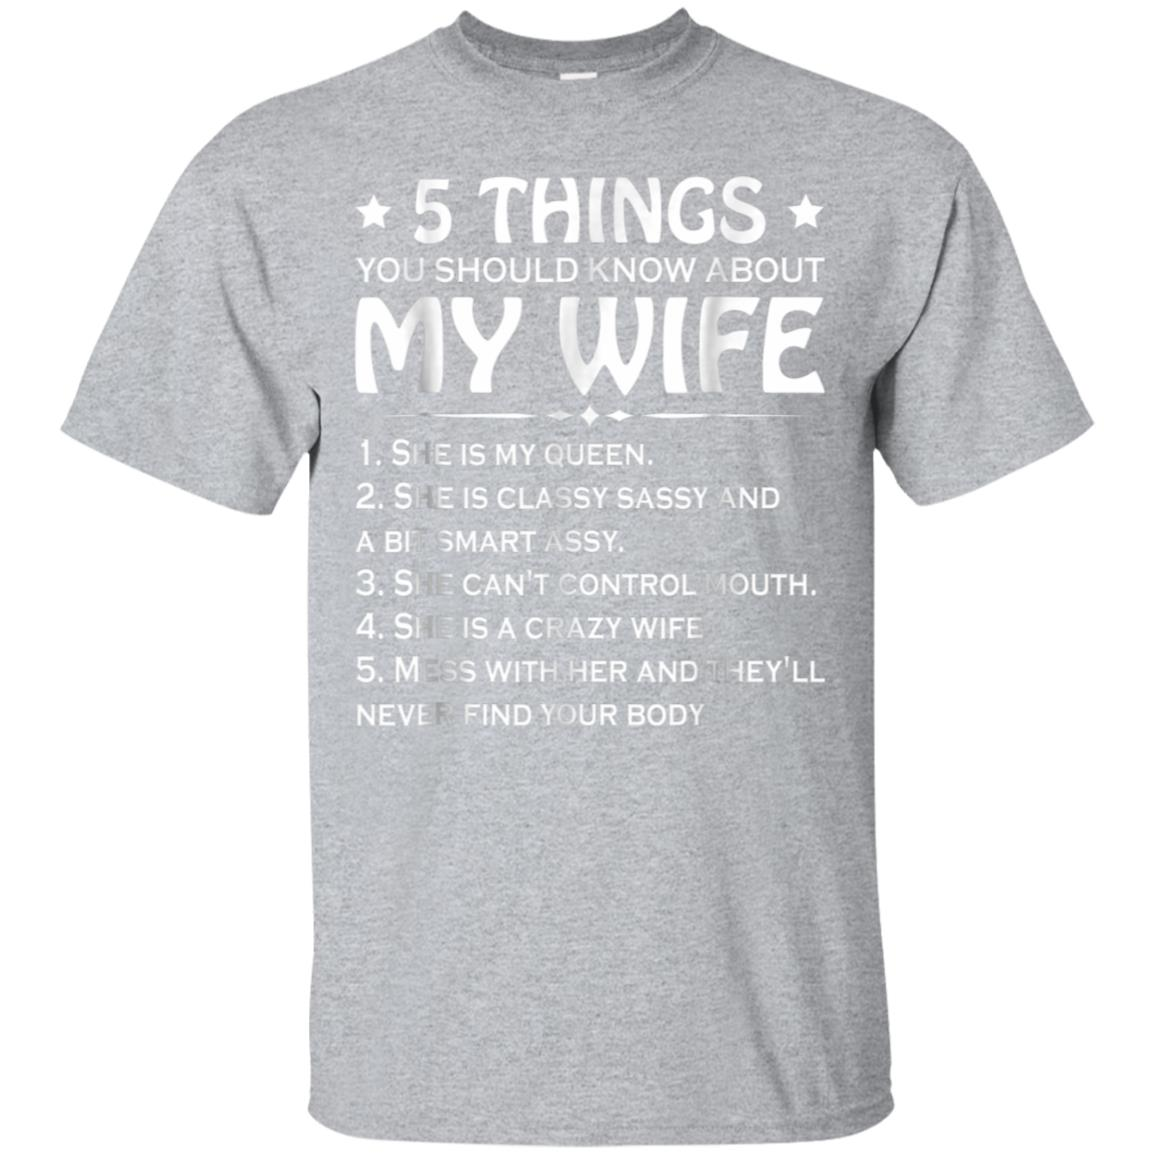 5 Things You Should Know About My Wife T-shirt 99promocode